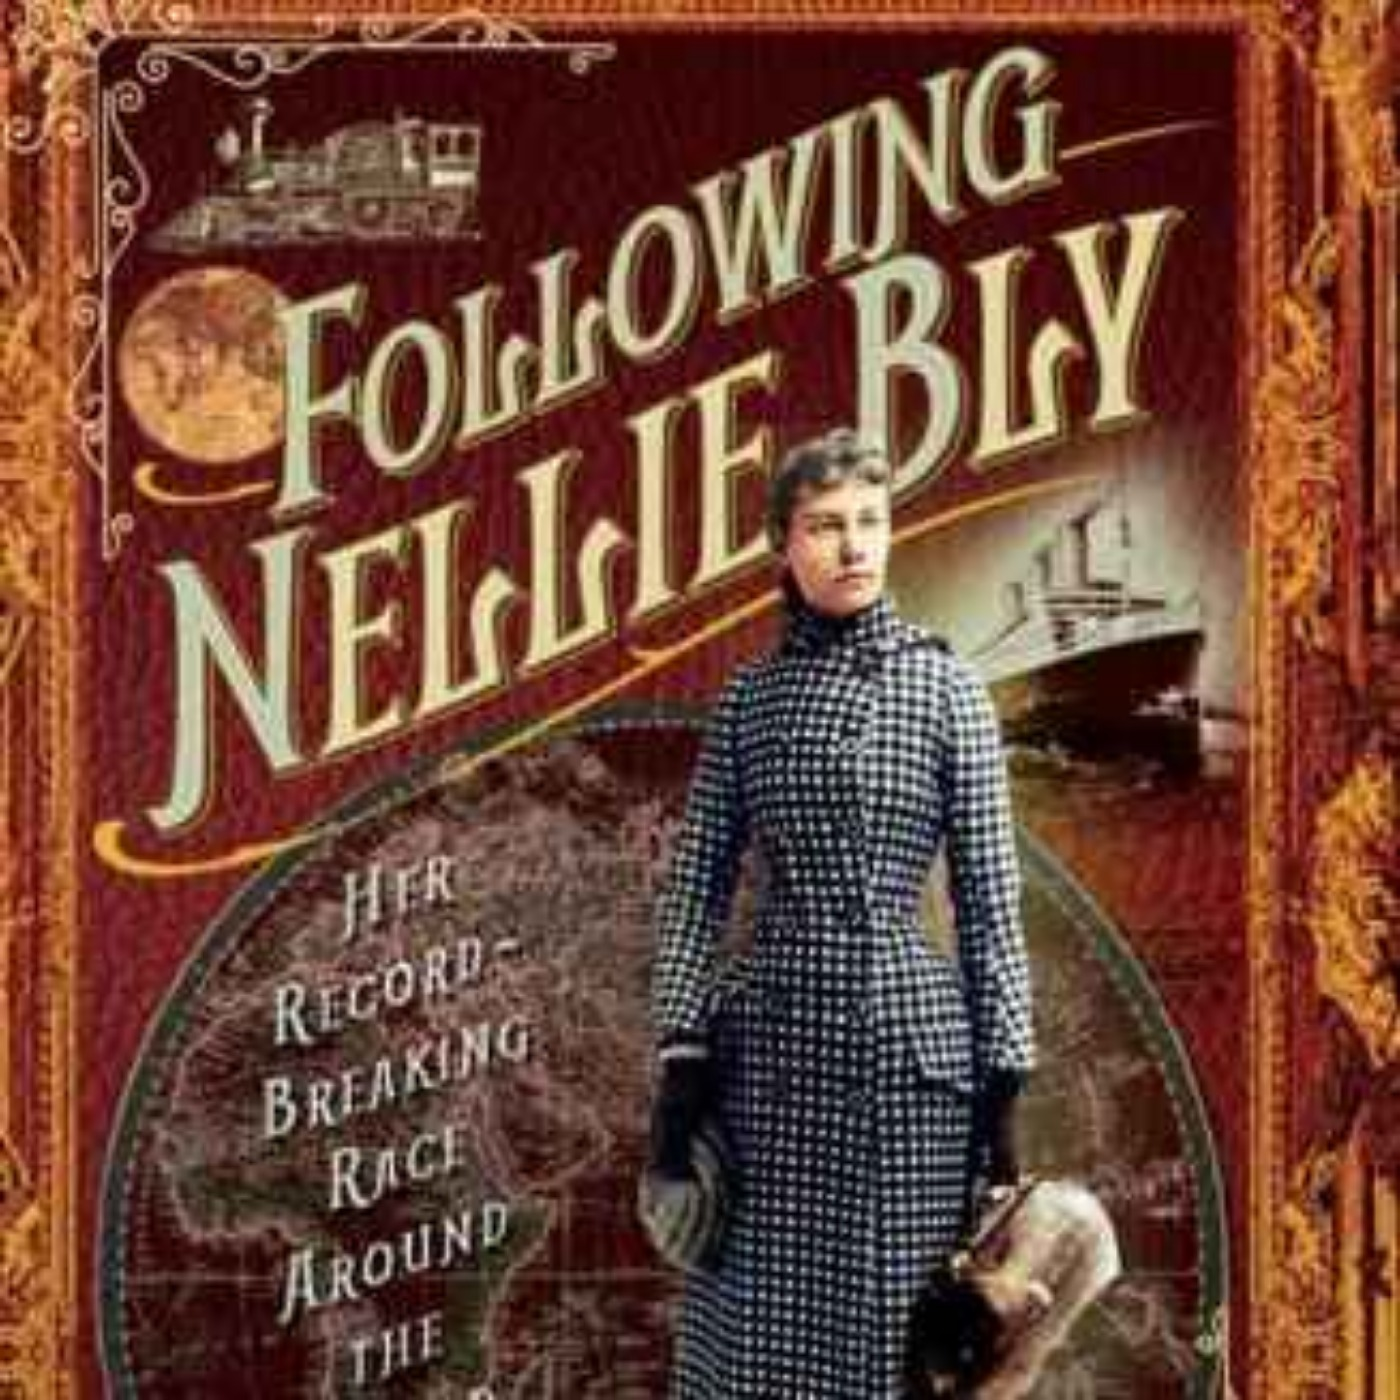 Rosemary Brown - Following Nellie Bly